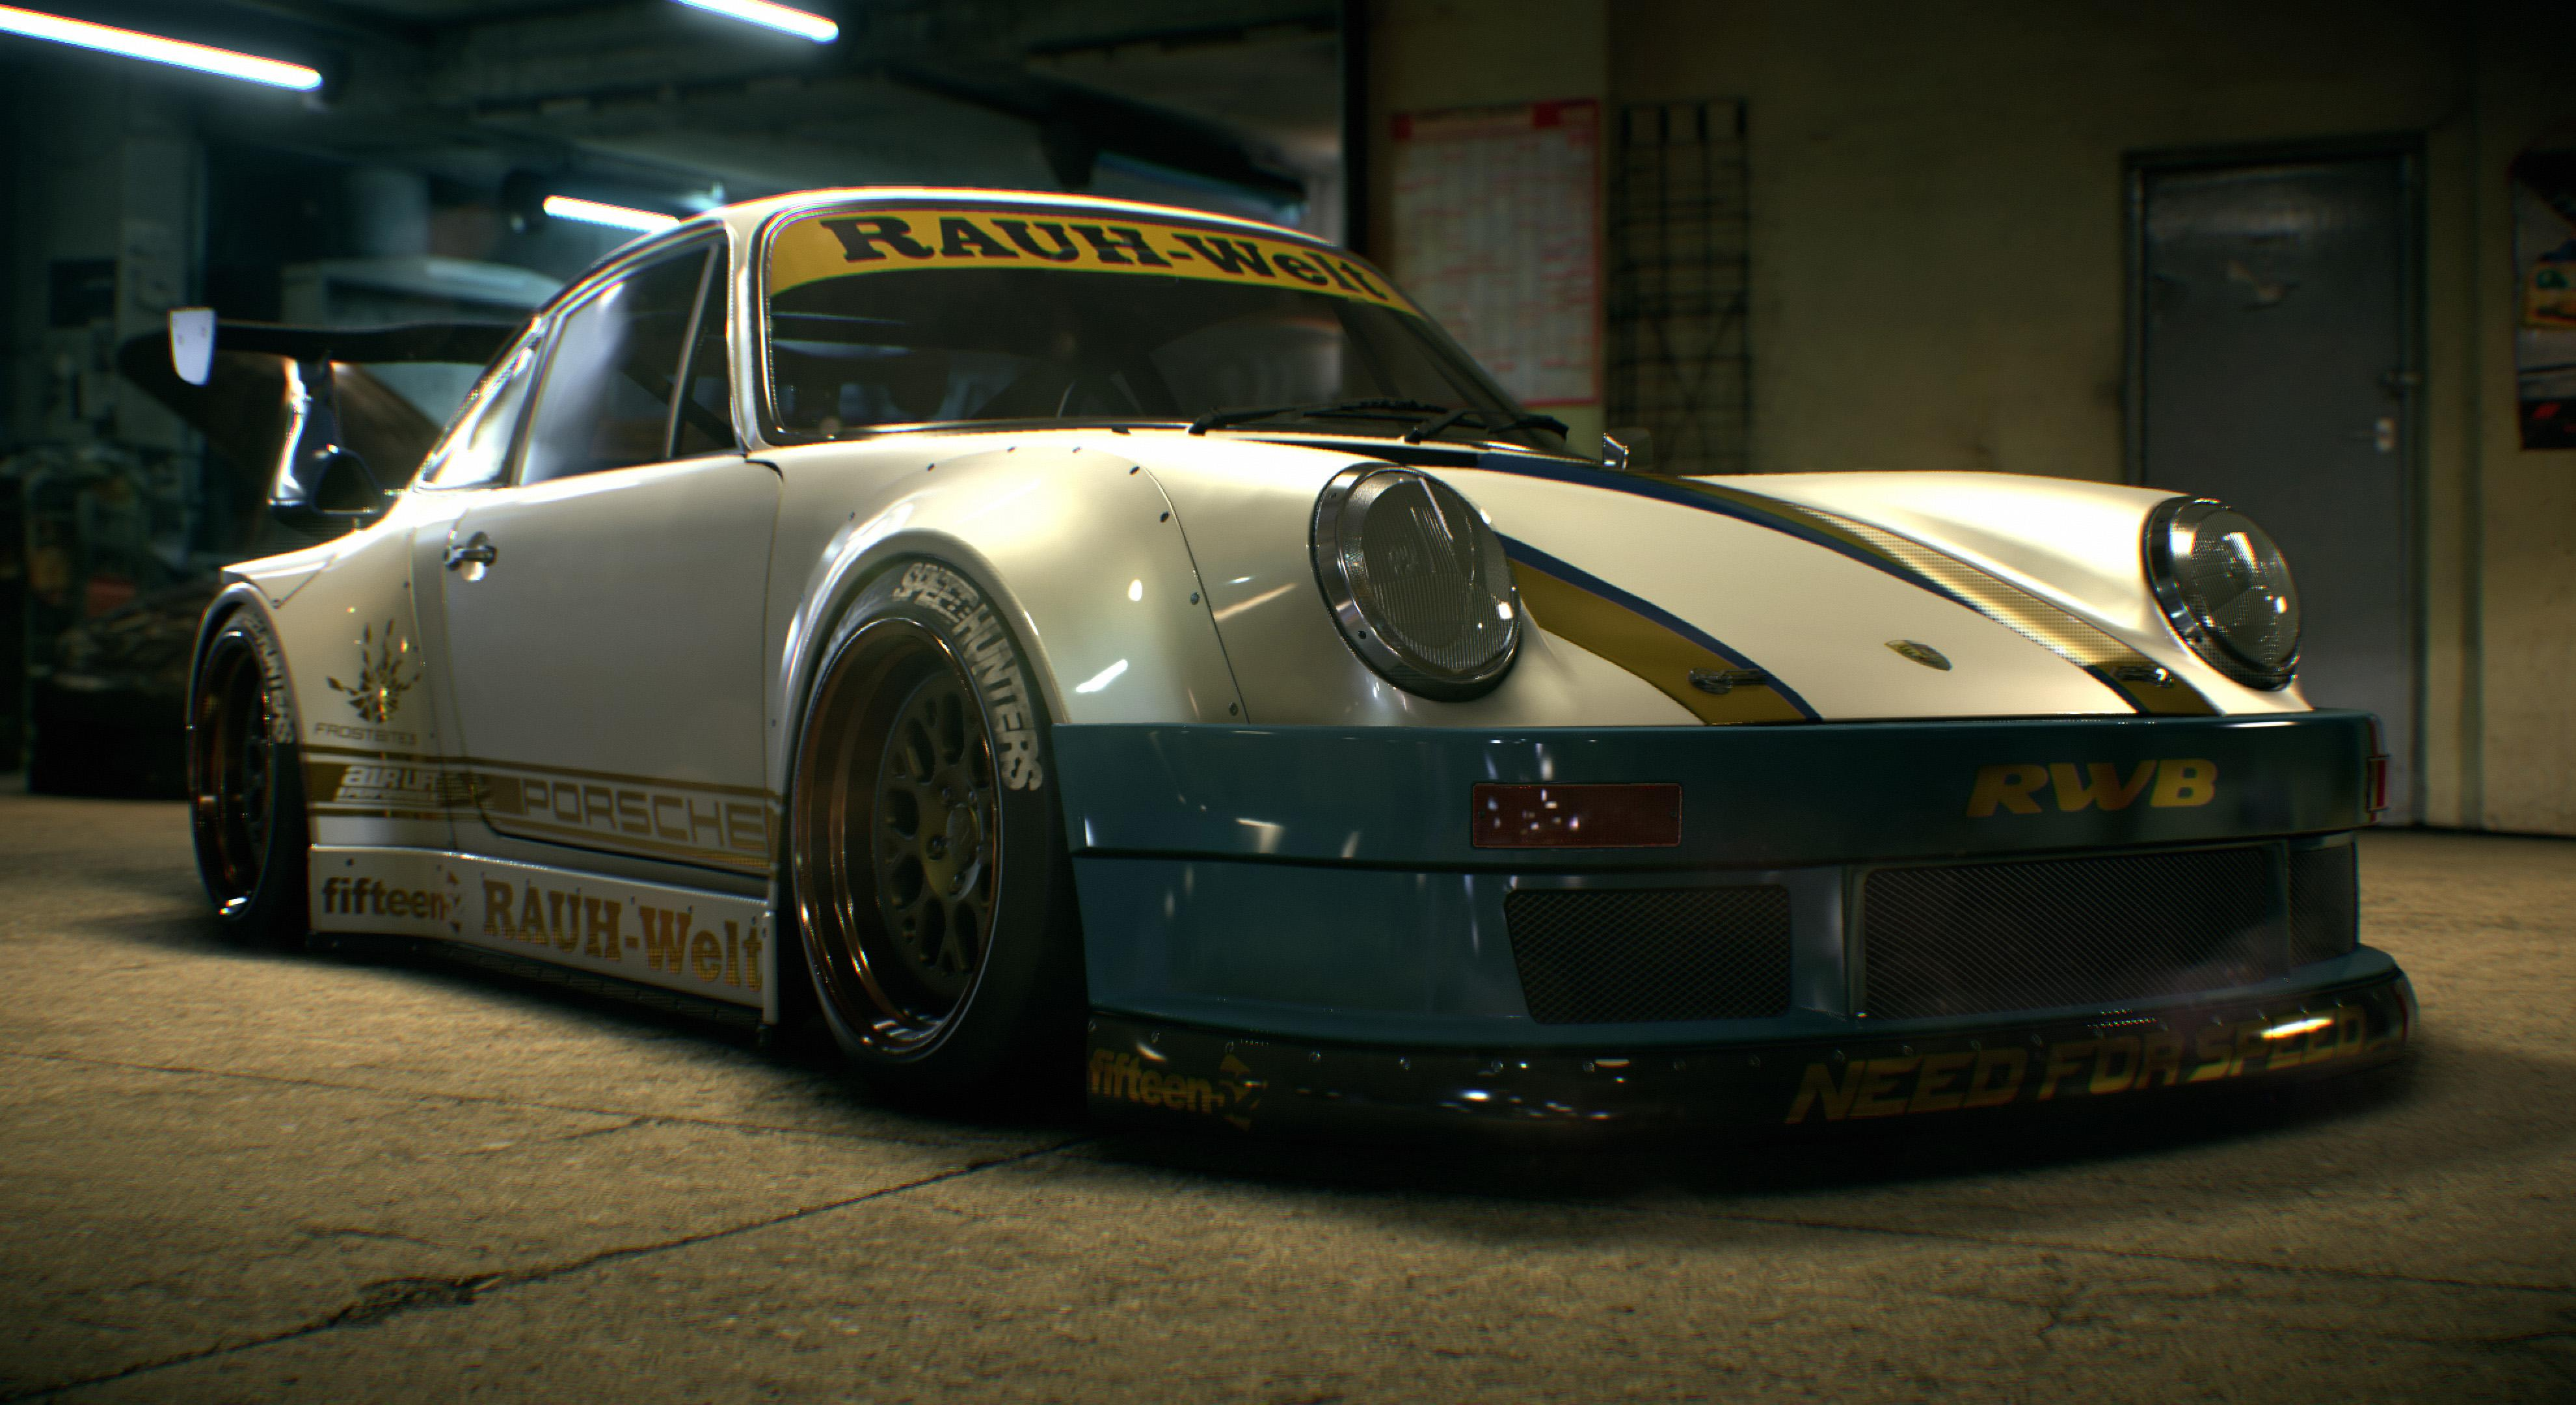 Rwb 4k Wallpaper: New Need For Speed 4K Screenshots Released Showing